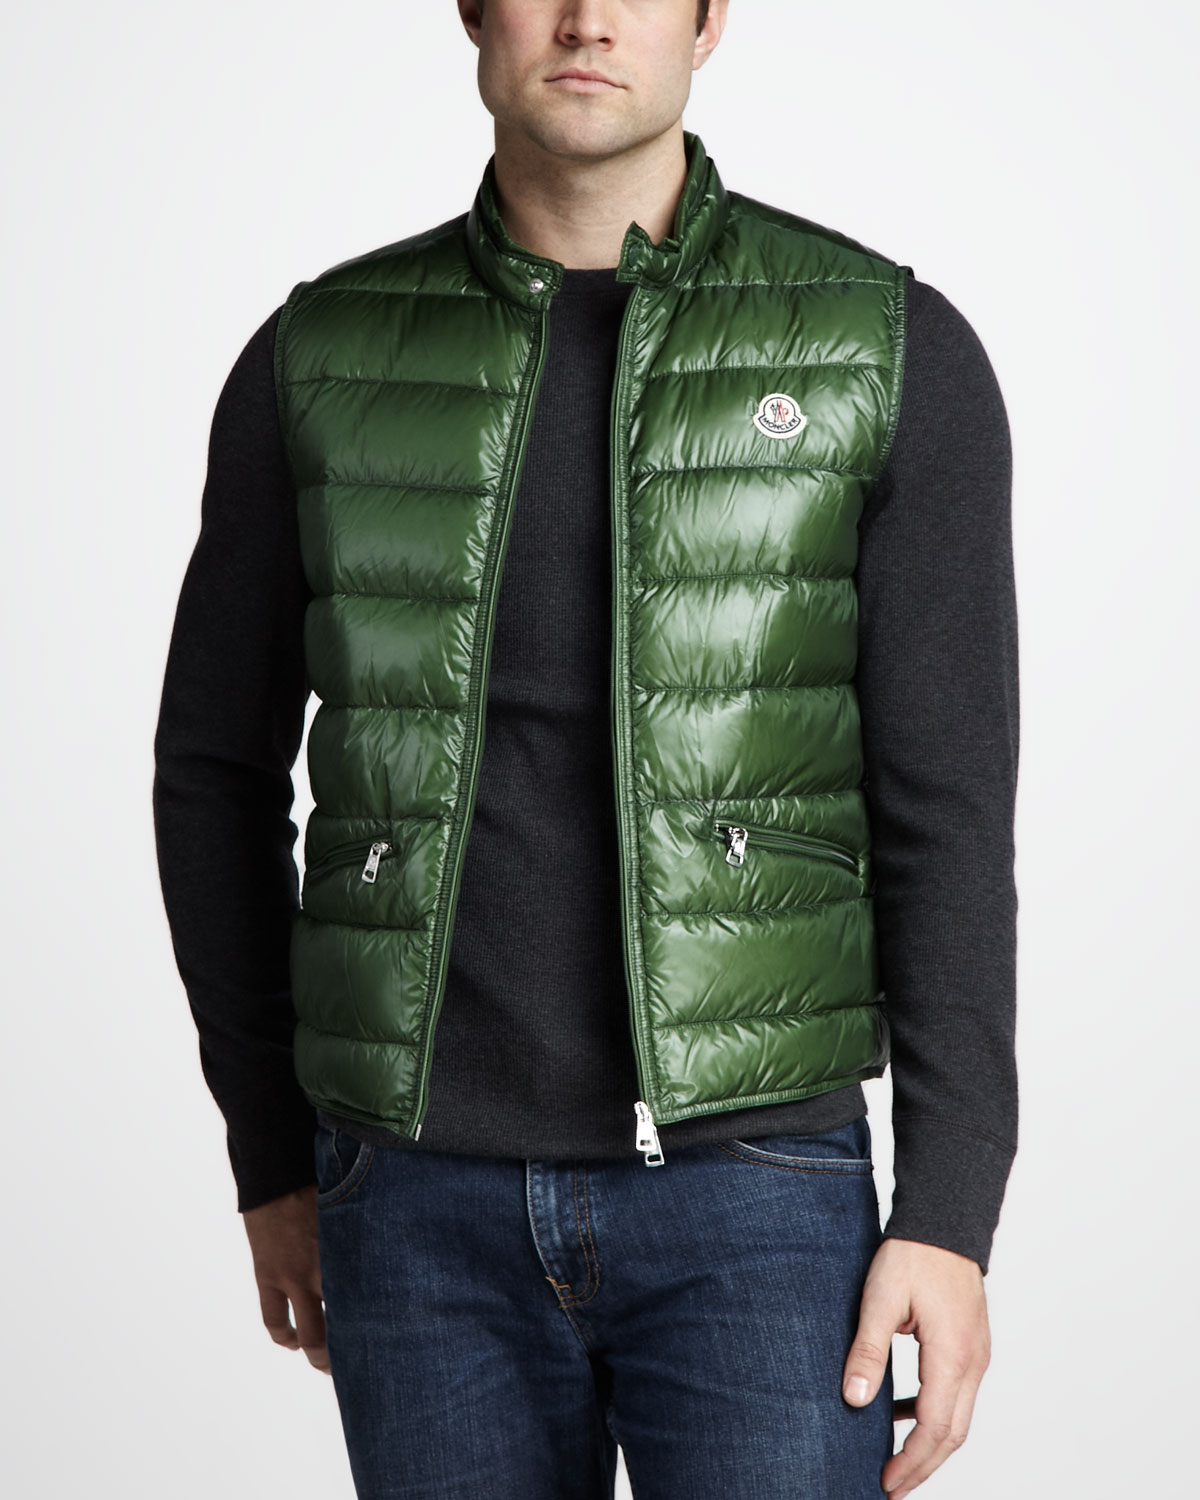 Men's emerald green full back dress vest with 5 buttons and 2 front pockets. % Polyester. Machine washable. Vest's front and back are of the same color and fabric.